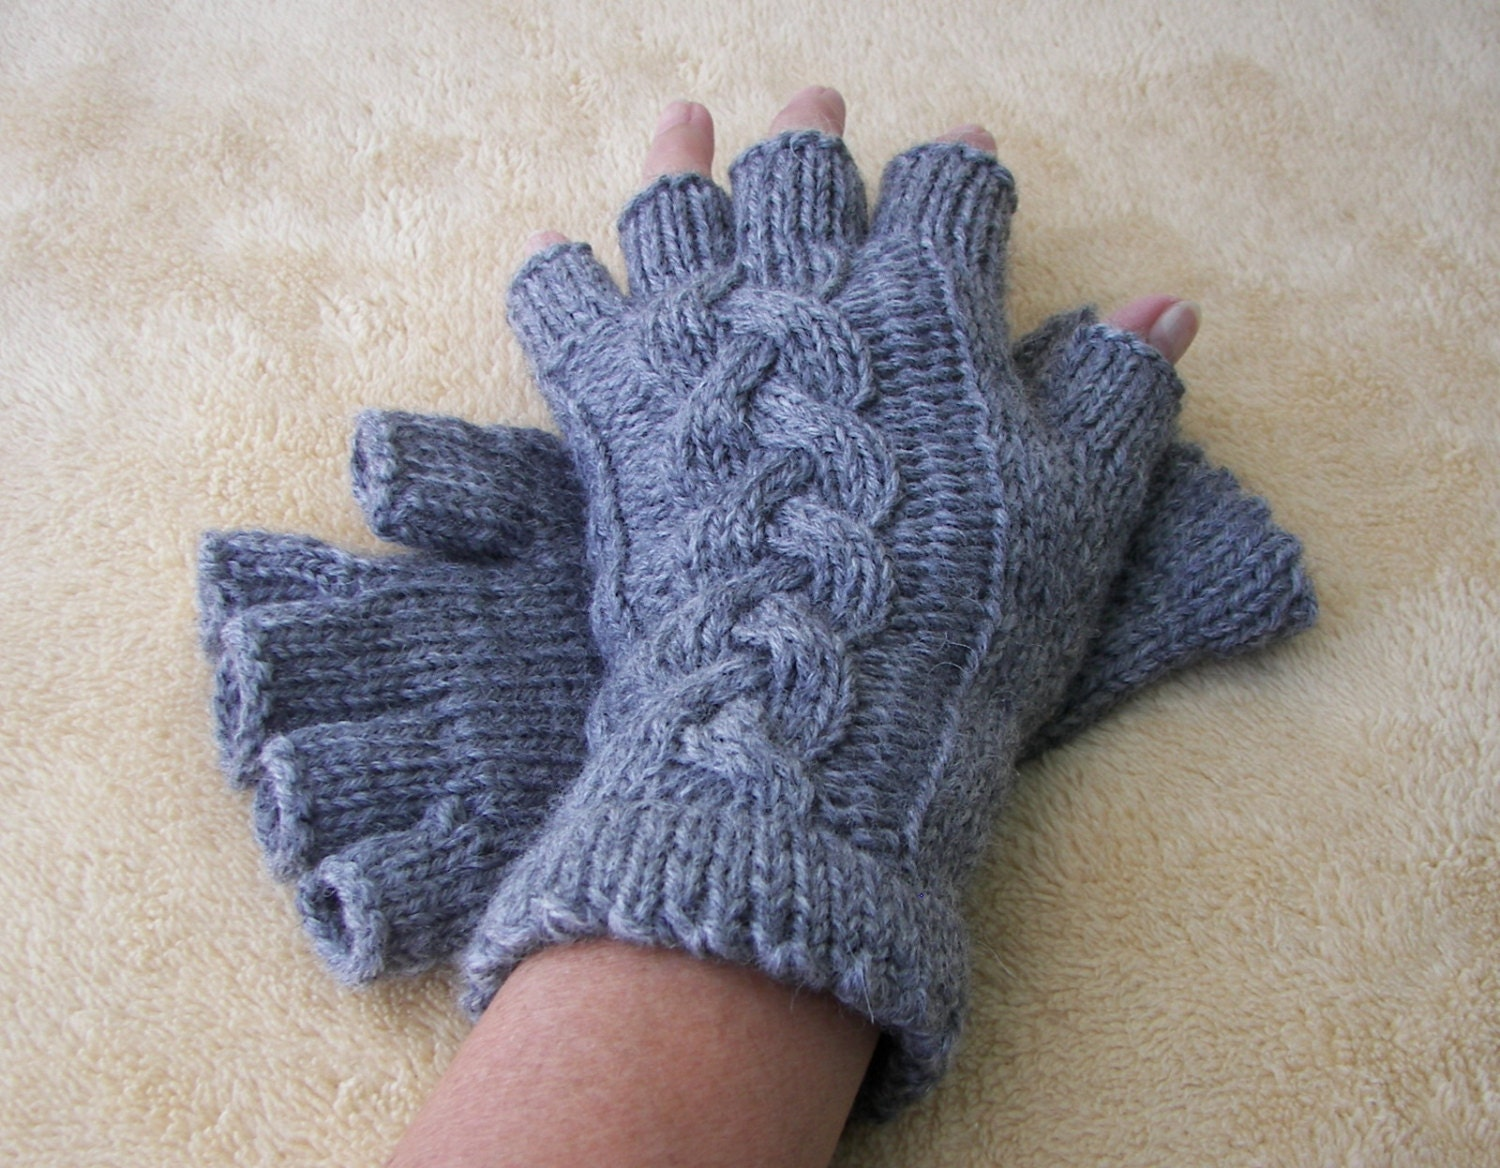 Knitting Pattern Gloves Half Fingers : Cable Hand Knit Half Finger Pure Peruvian WOOL GLOVES by ATIdesign